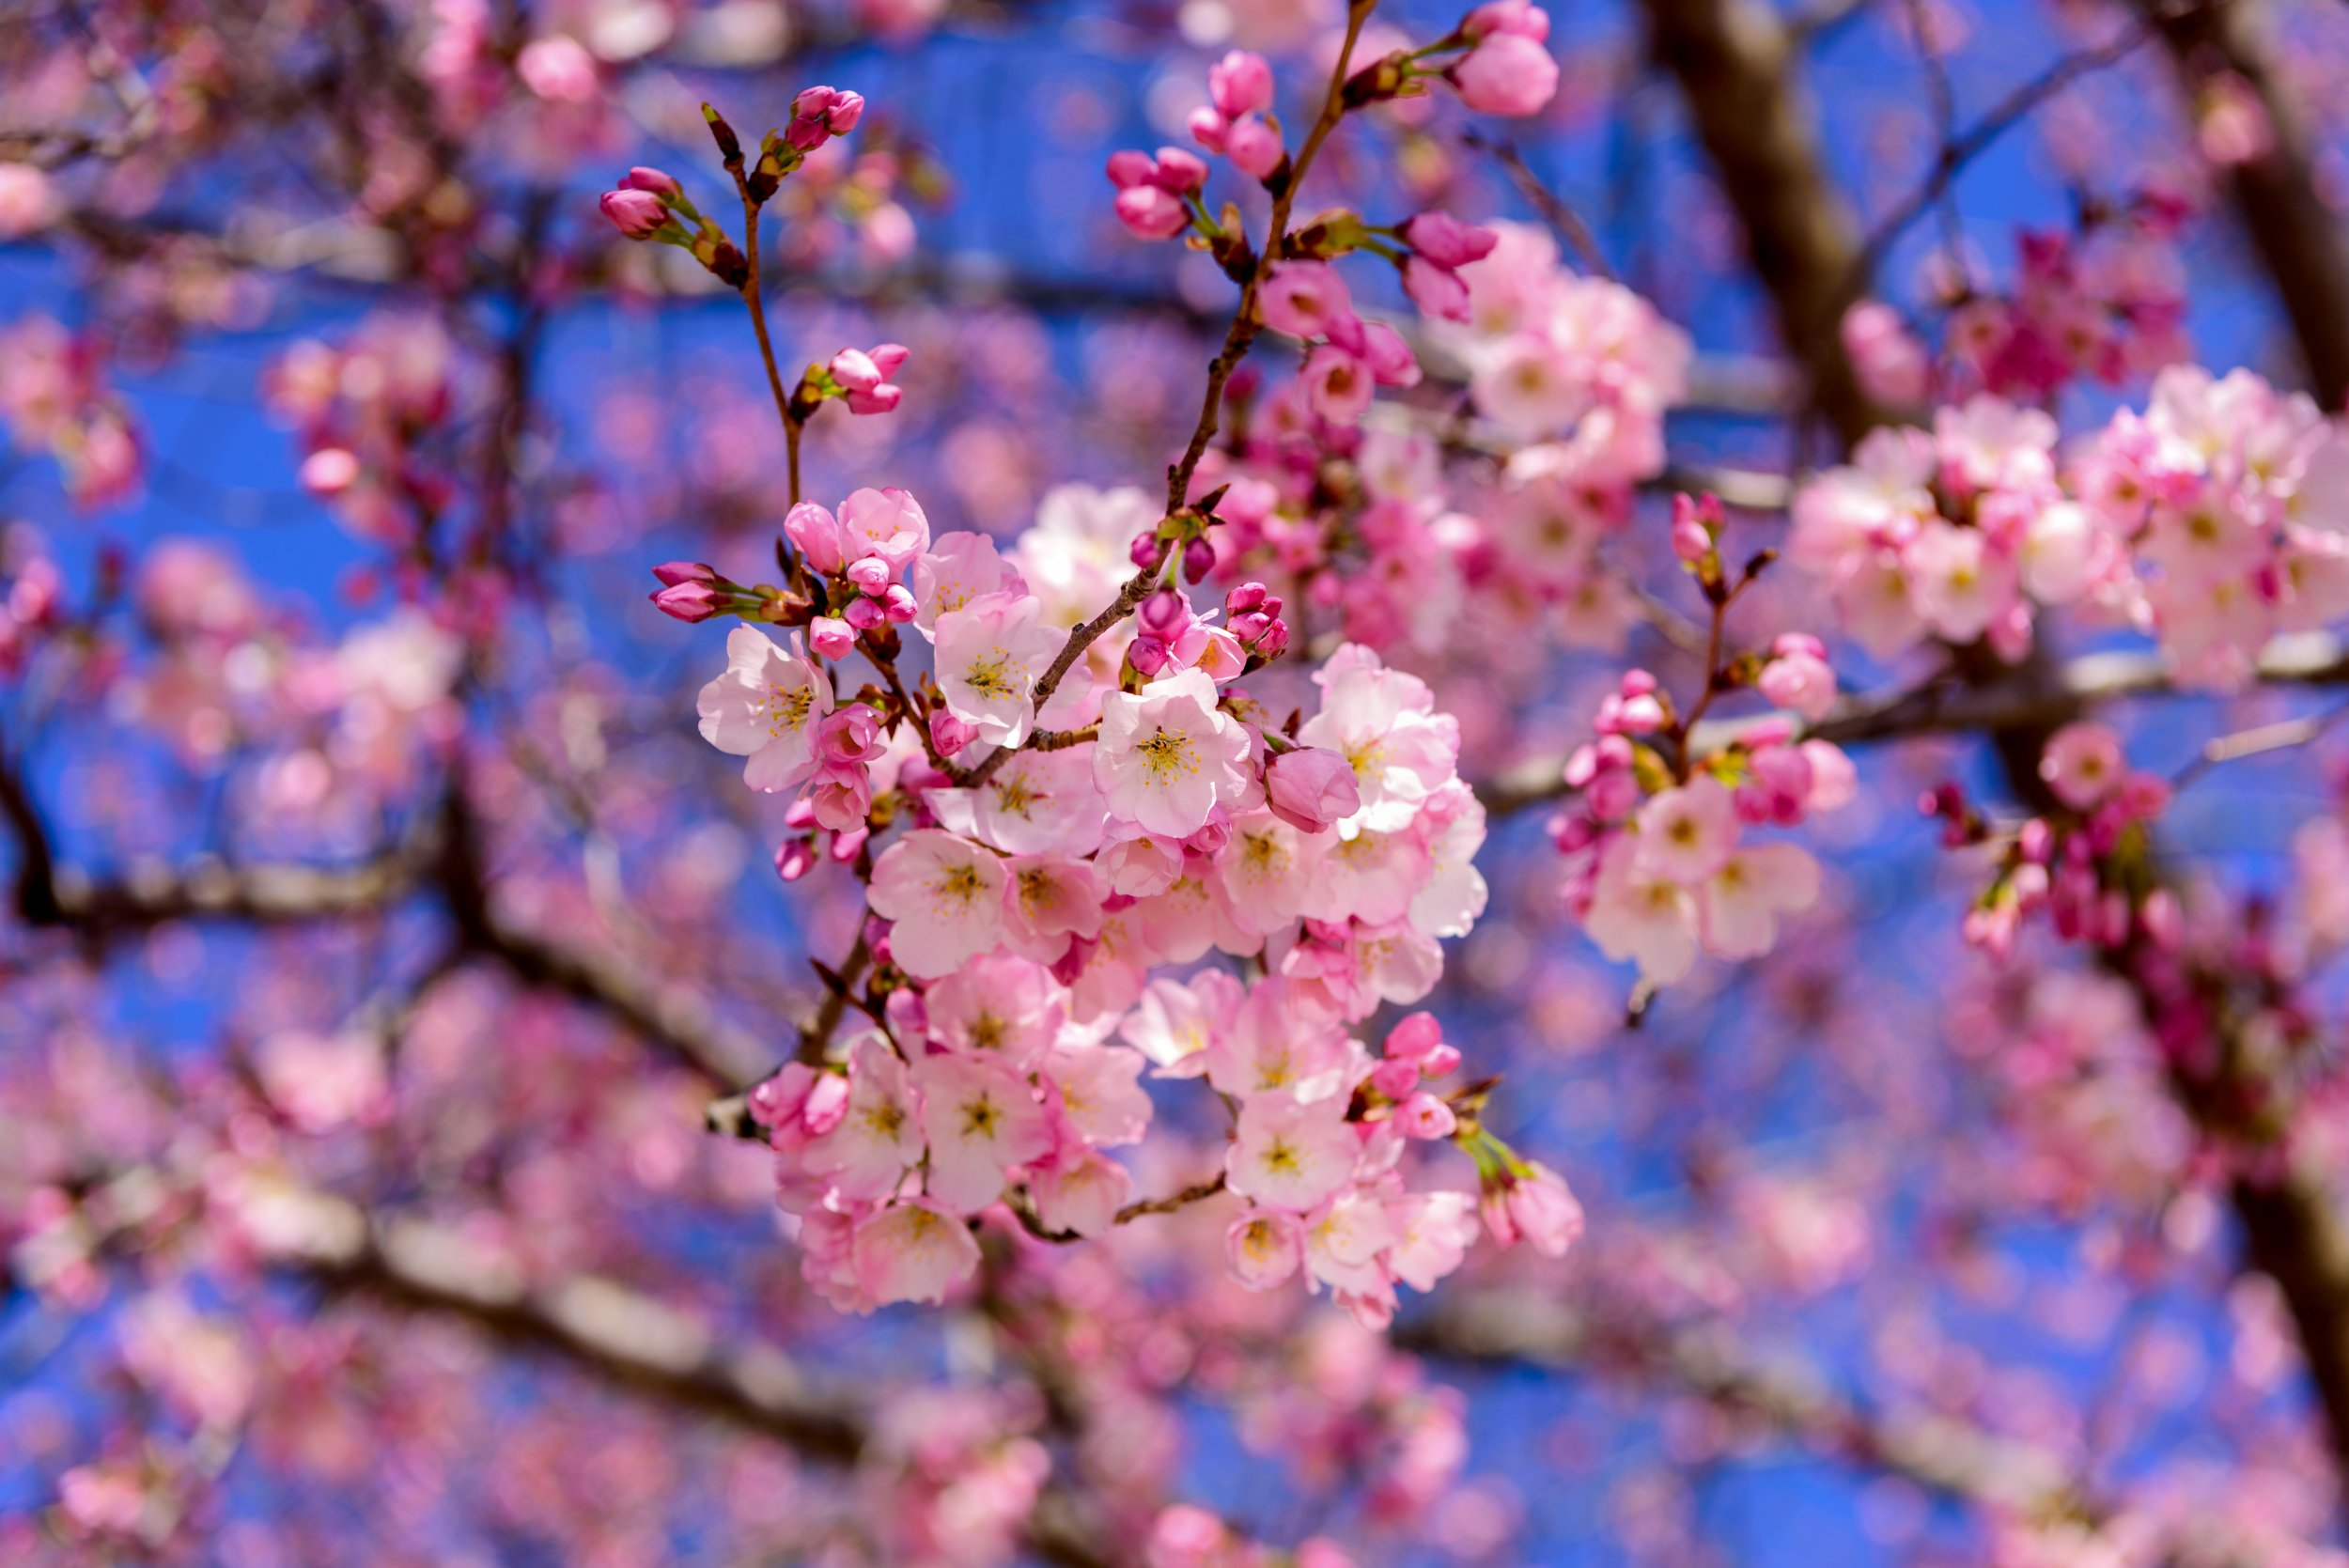 Where to Chase Cherry Blossoms This Spring